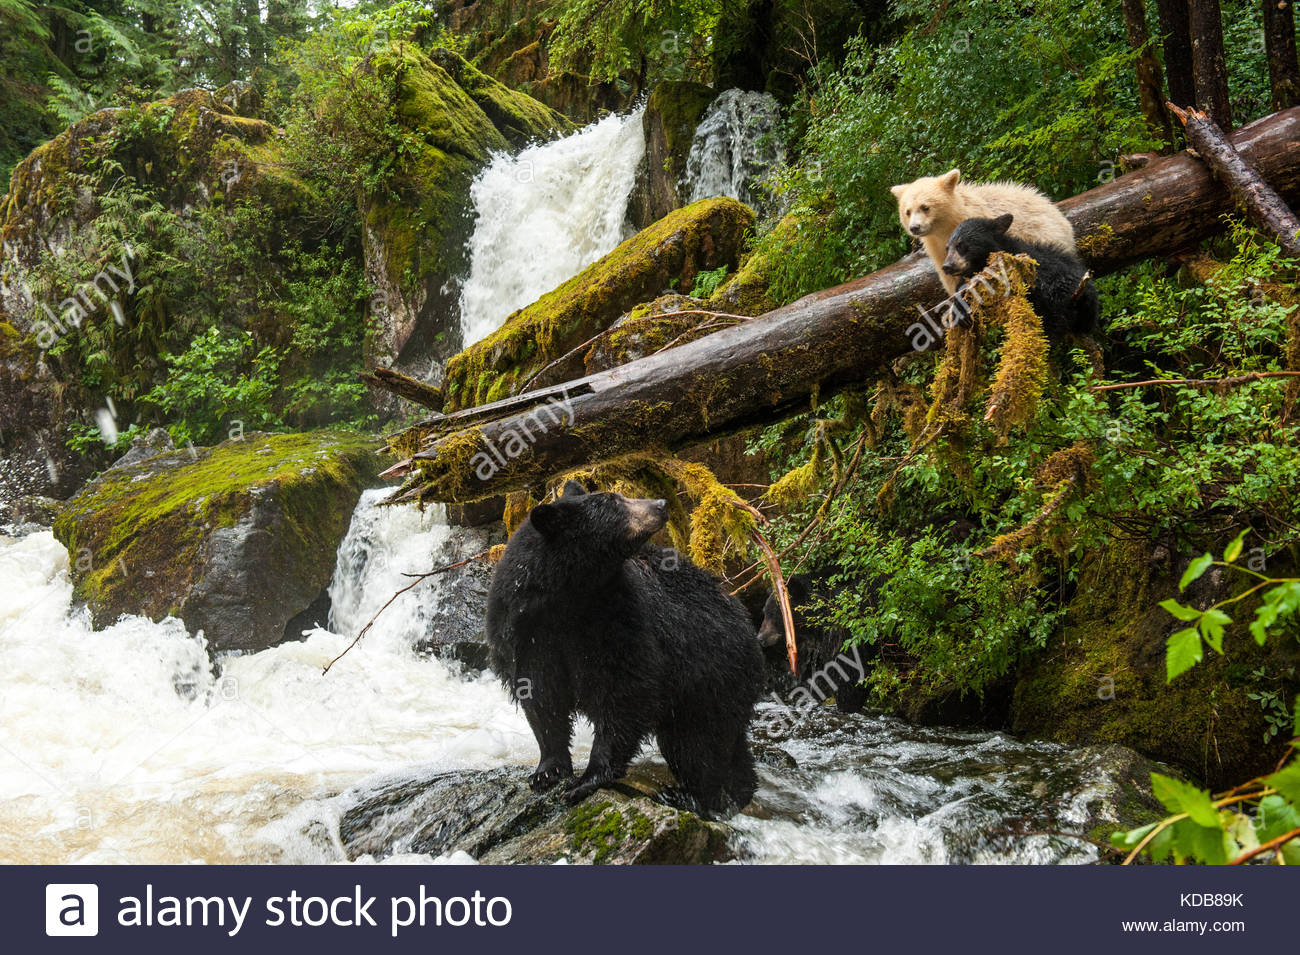 A mother black bear, Ursus americanus, looks up at her black and spirit bear cubs by a salmon waterfall. - Stock Image